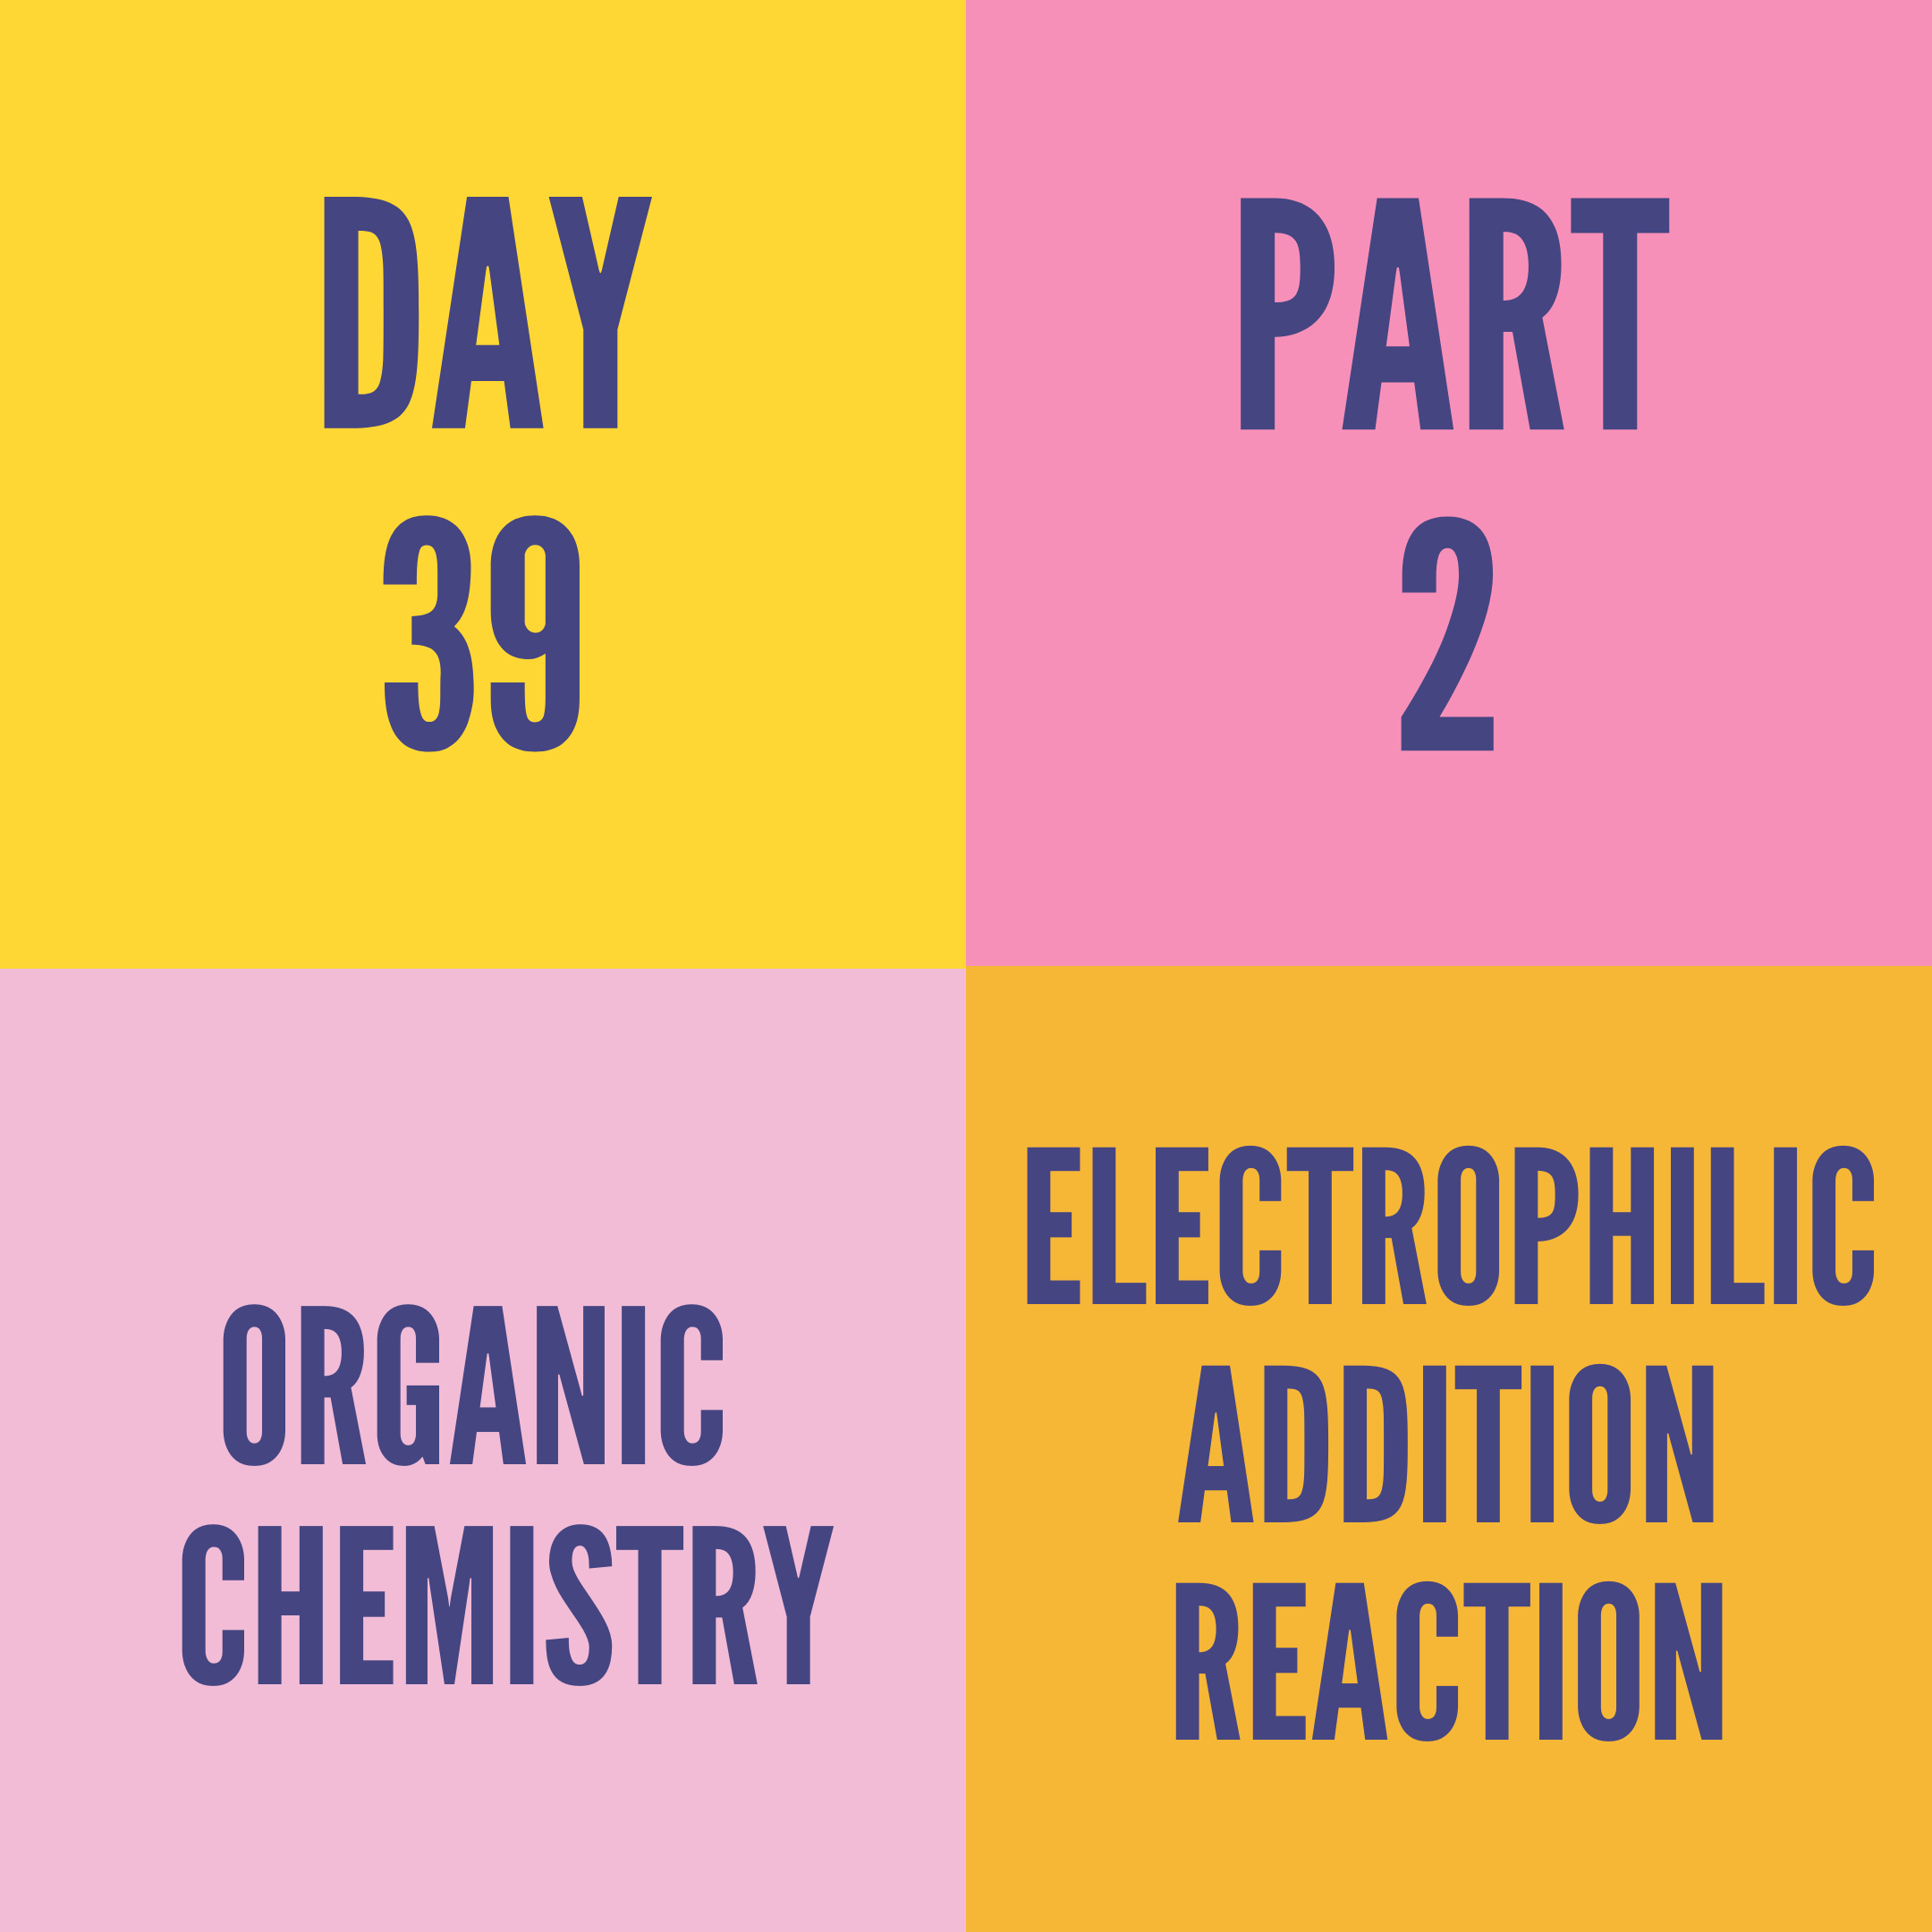 DAY-39 PART-2 ELECTROPHILIC ADDITION REACTION